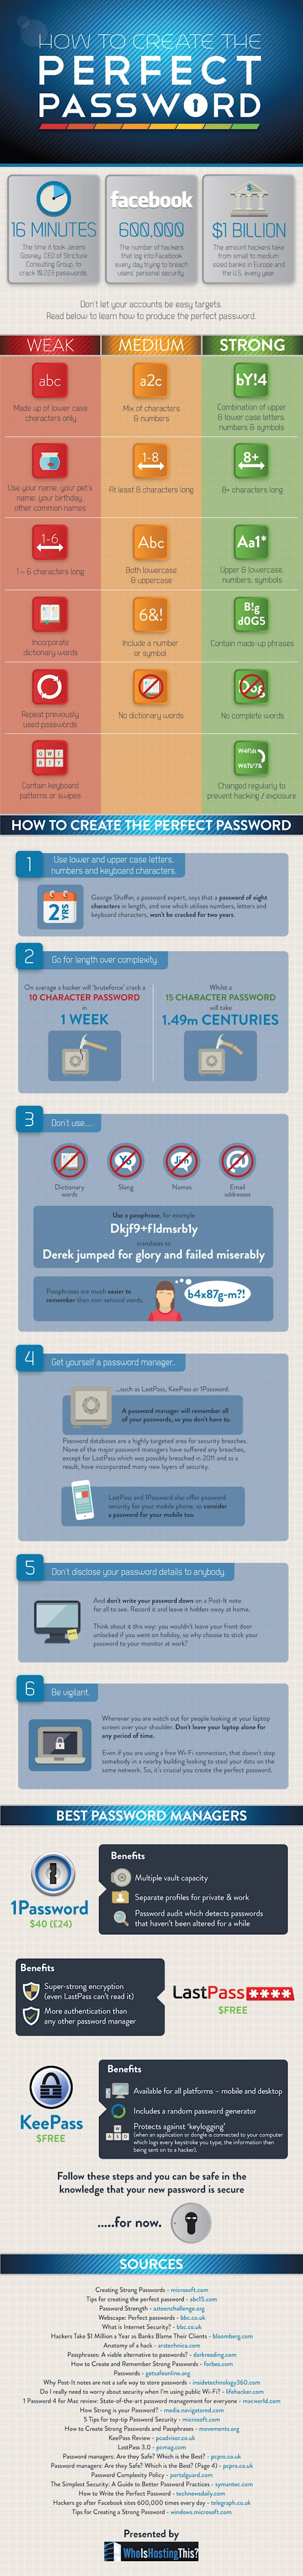 How to Create a Super Strong Password (Infographic)